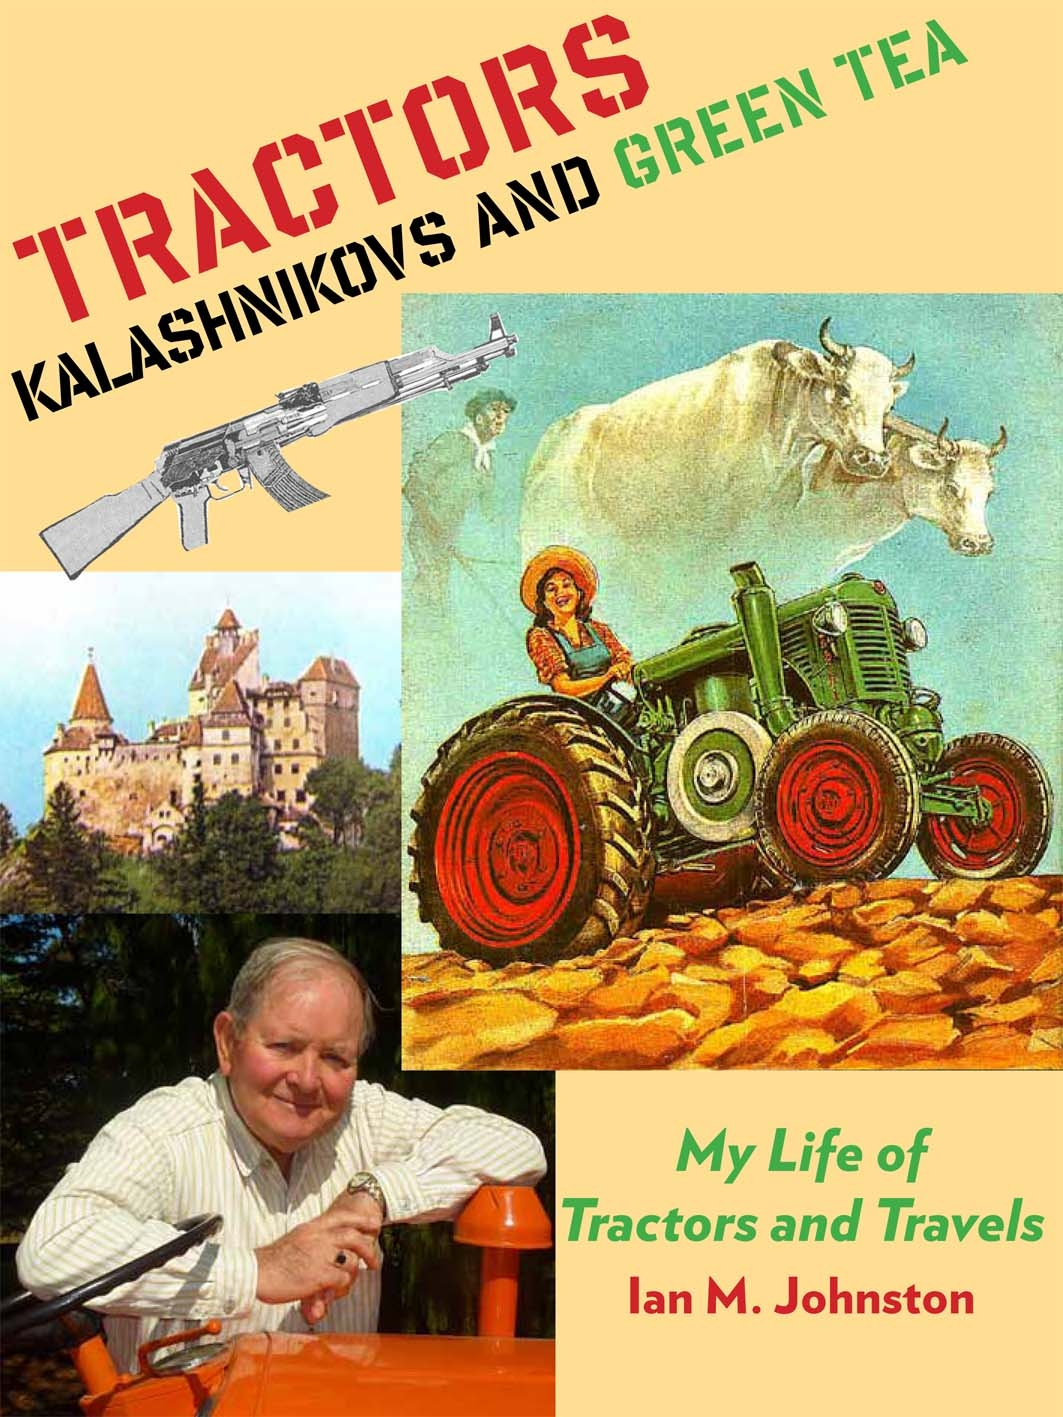 Tractors, Kalashnikovs and Green Tea